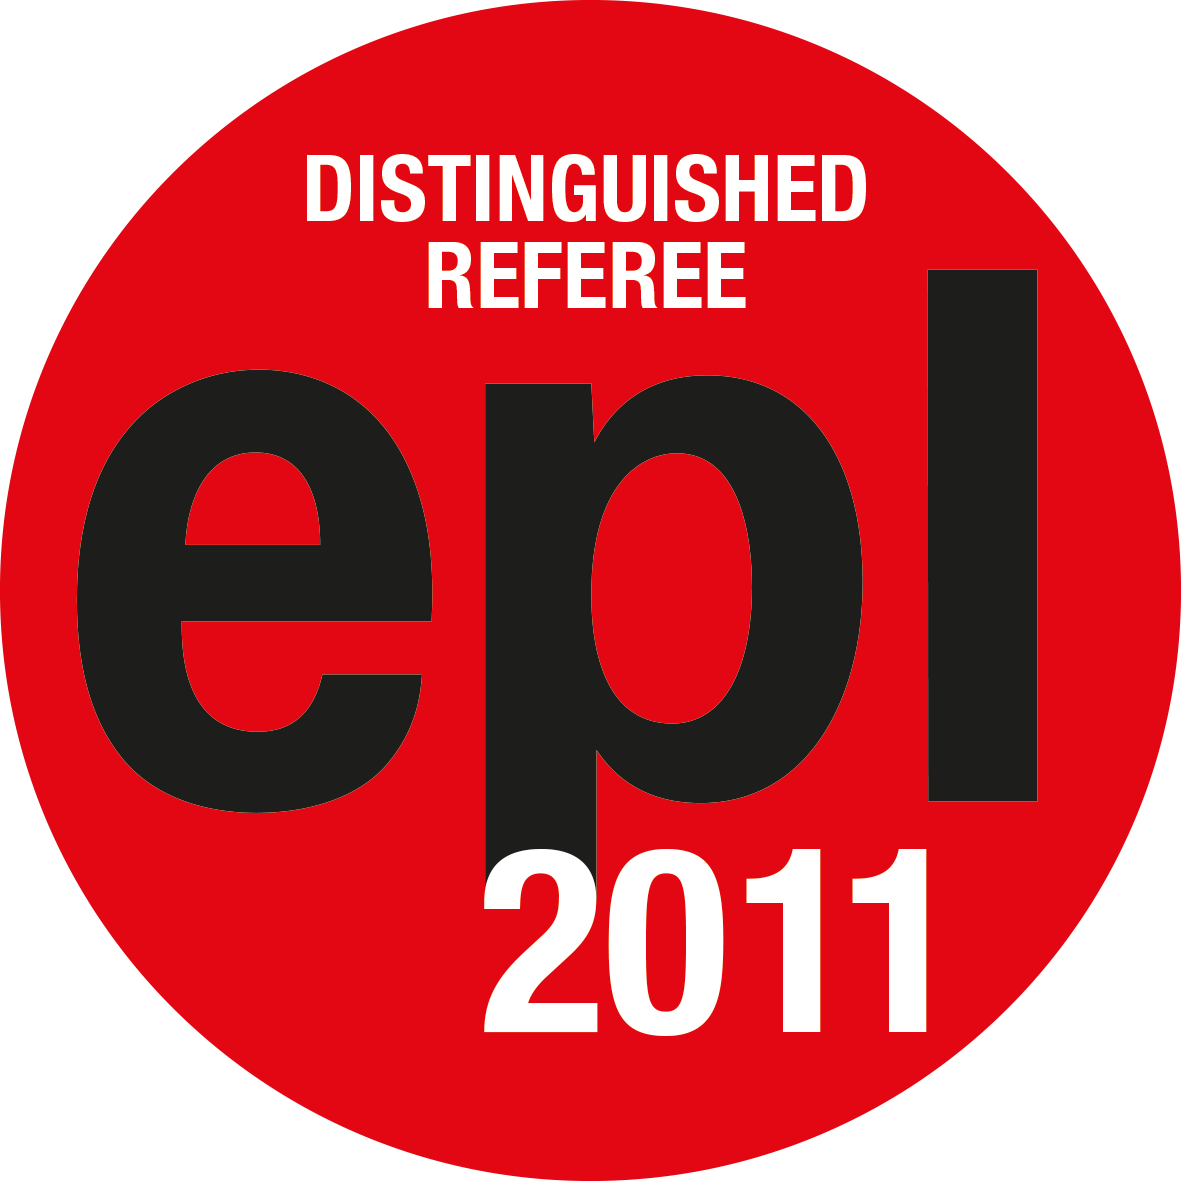 EPL Distinguished Referees 2011